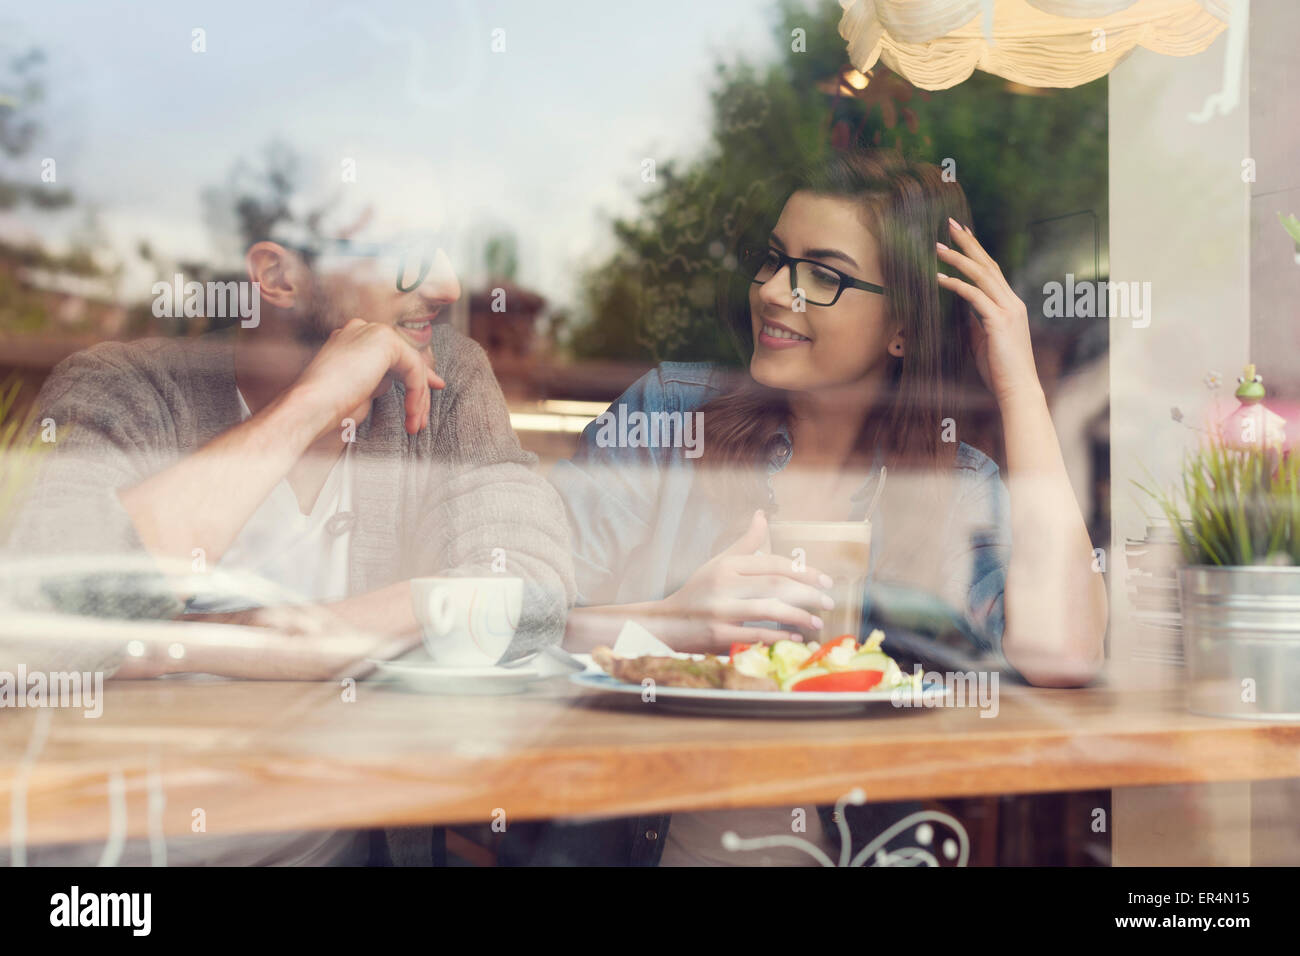 Young couple on a date at restaurant. Krakow, Poland - Stock Image